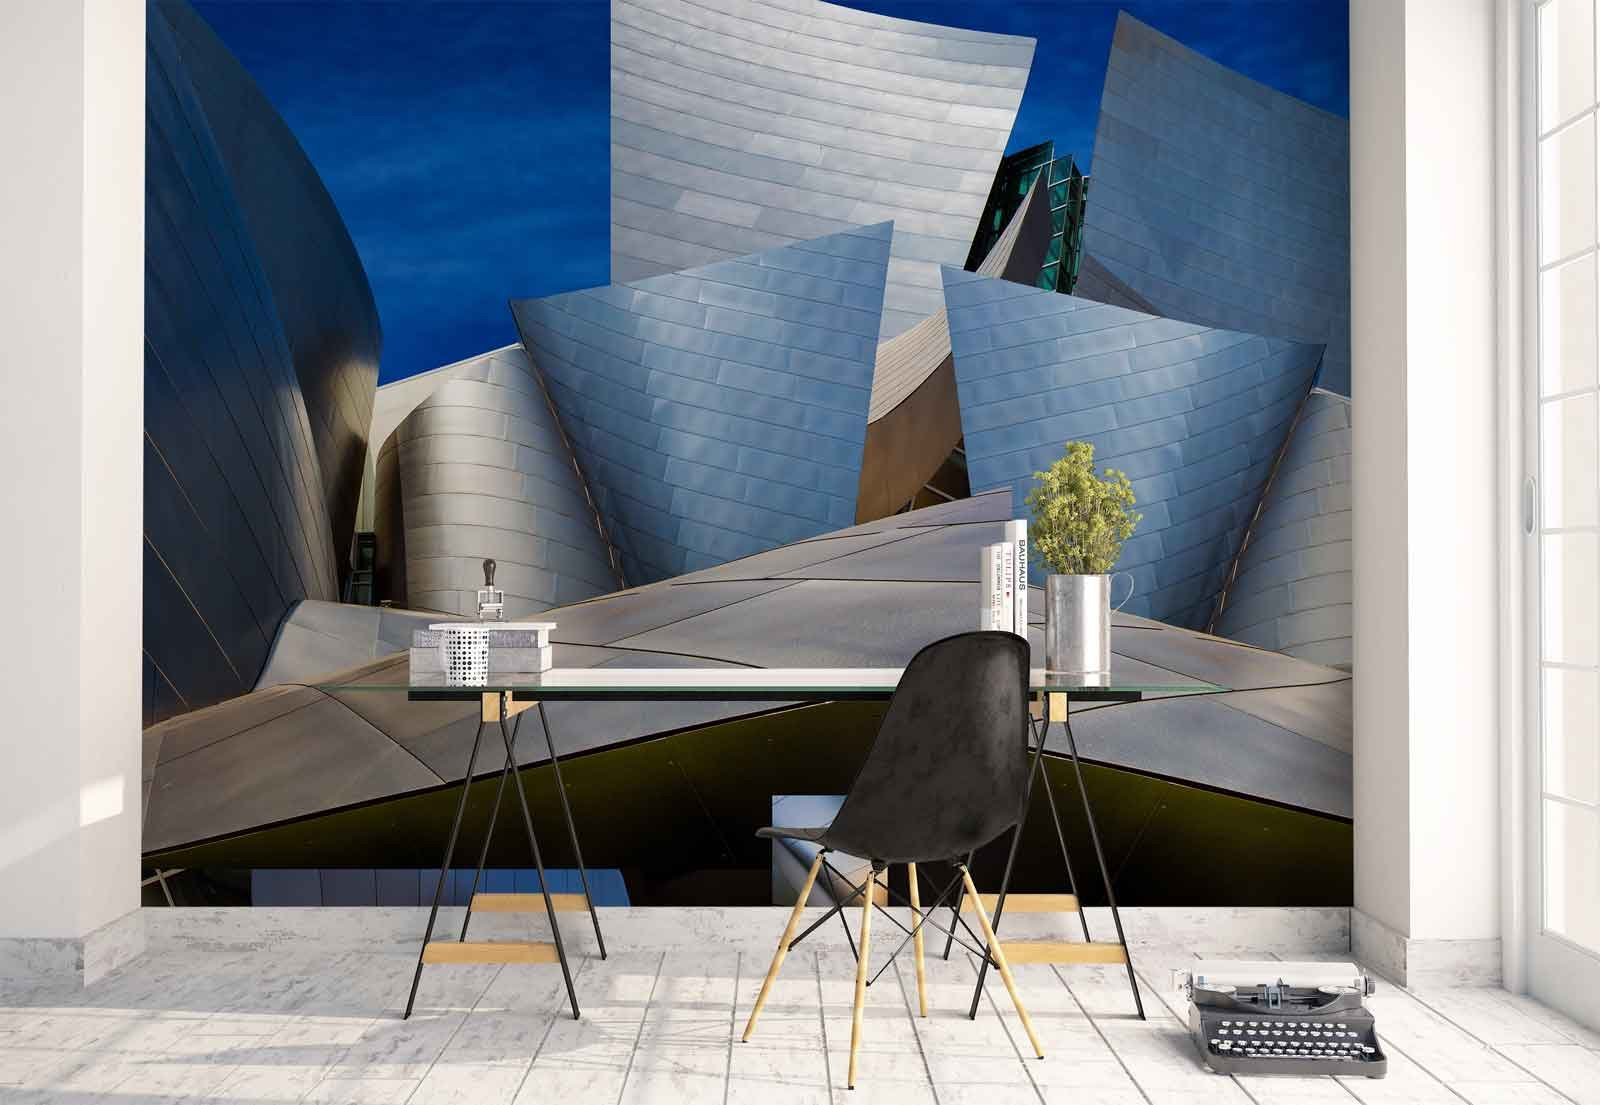 Photo wallpaper wall mural - Steel Panels Shapes Building - Theme Architecture - L - 8ft 4in x 6ft (WxH) - 2 Pieces - Printed on 130gsm Non-Woven Paper - 1X-678031V4